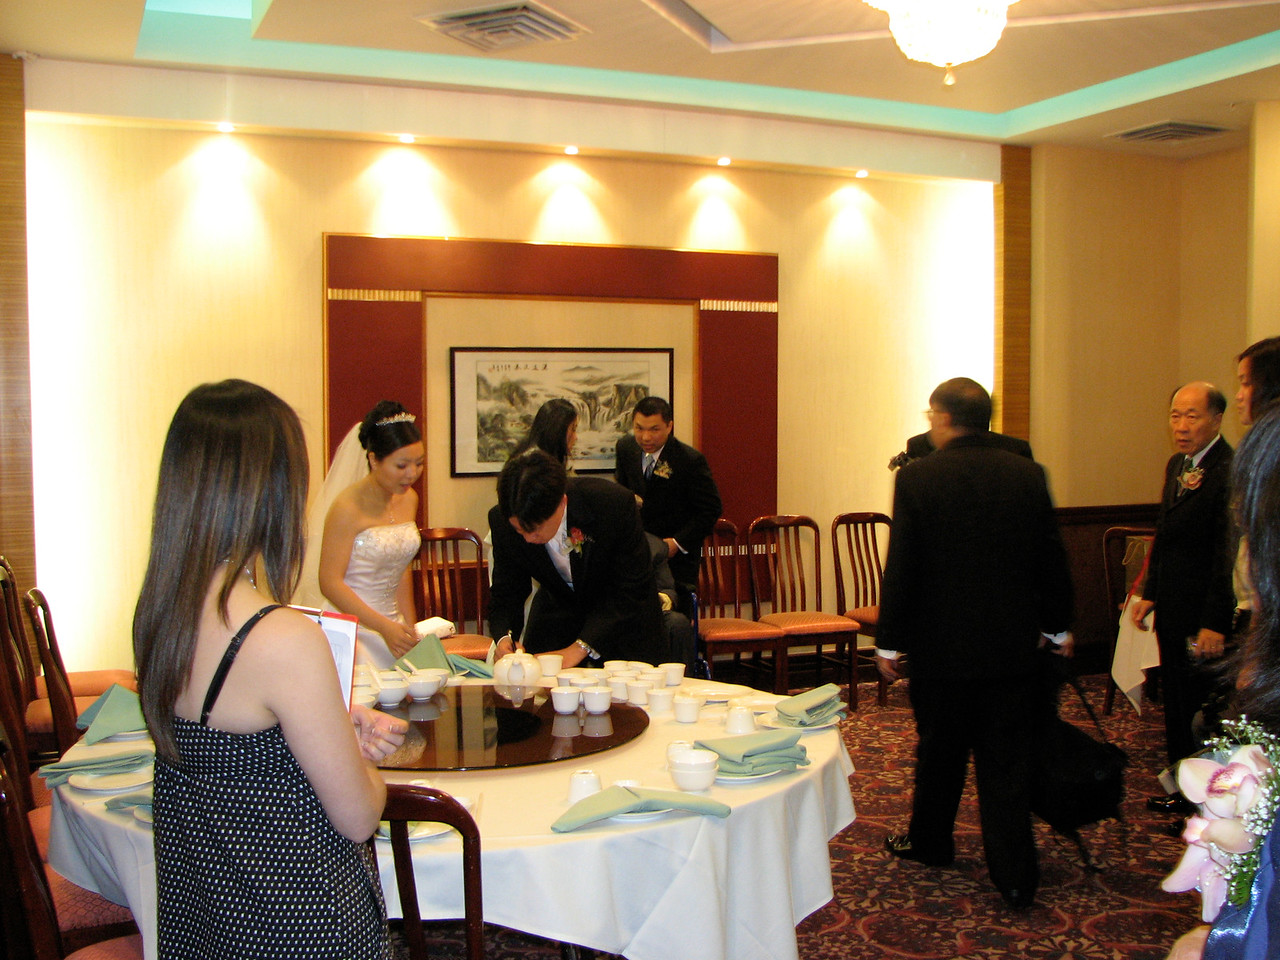 2007 05 19 Sat - Reception - Tea ceremony in private room with family 1